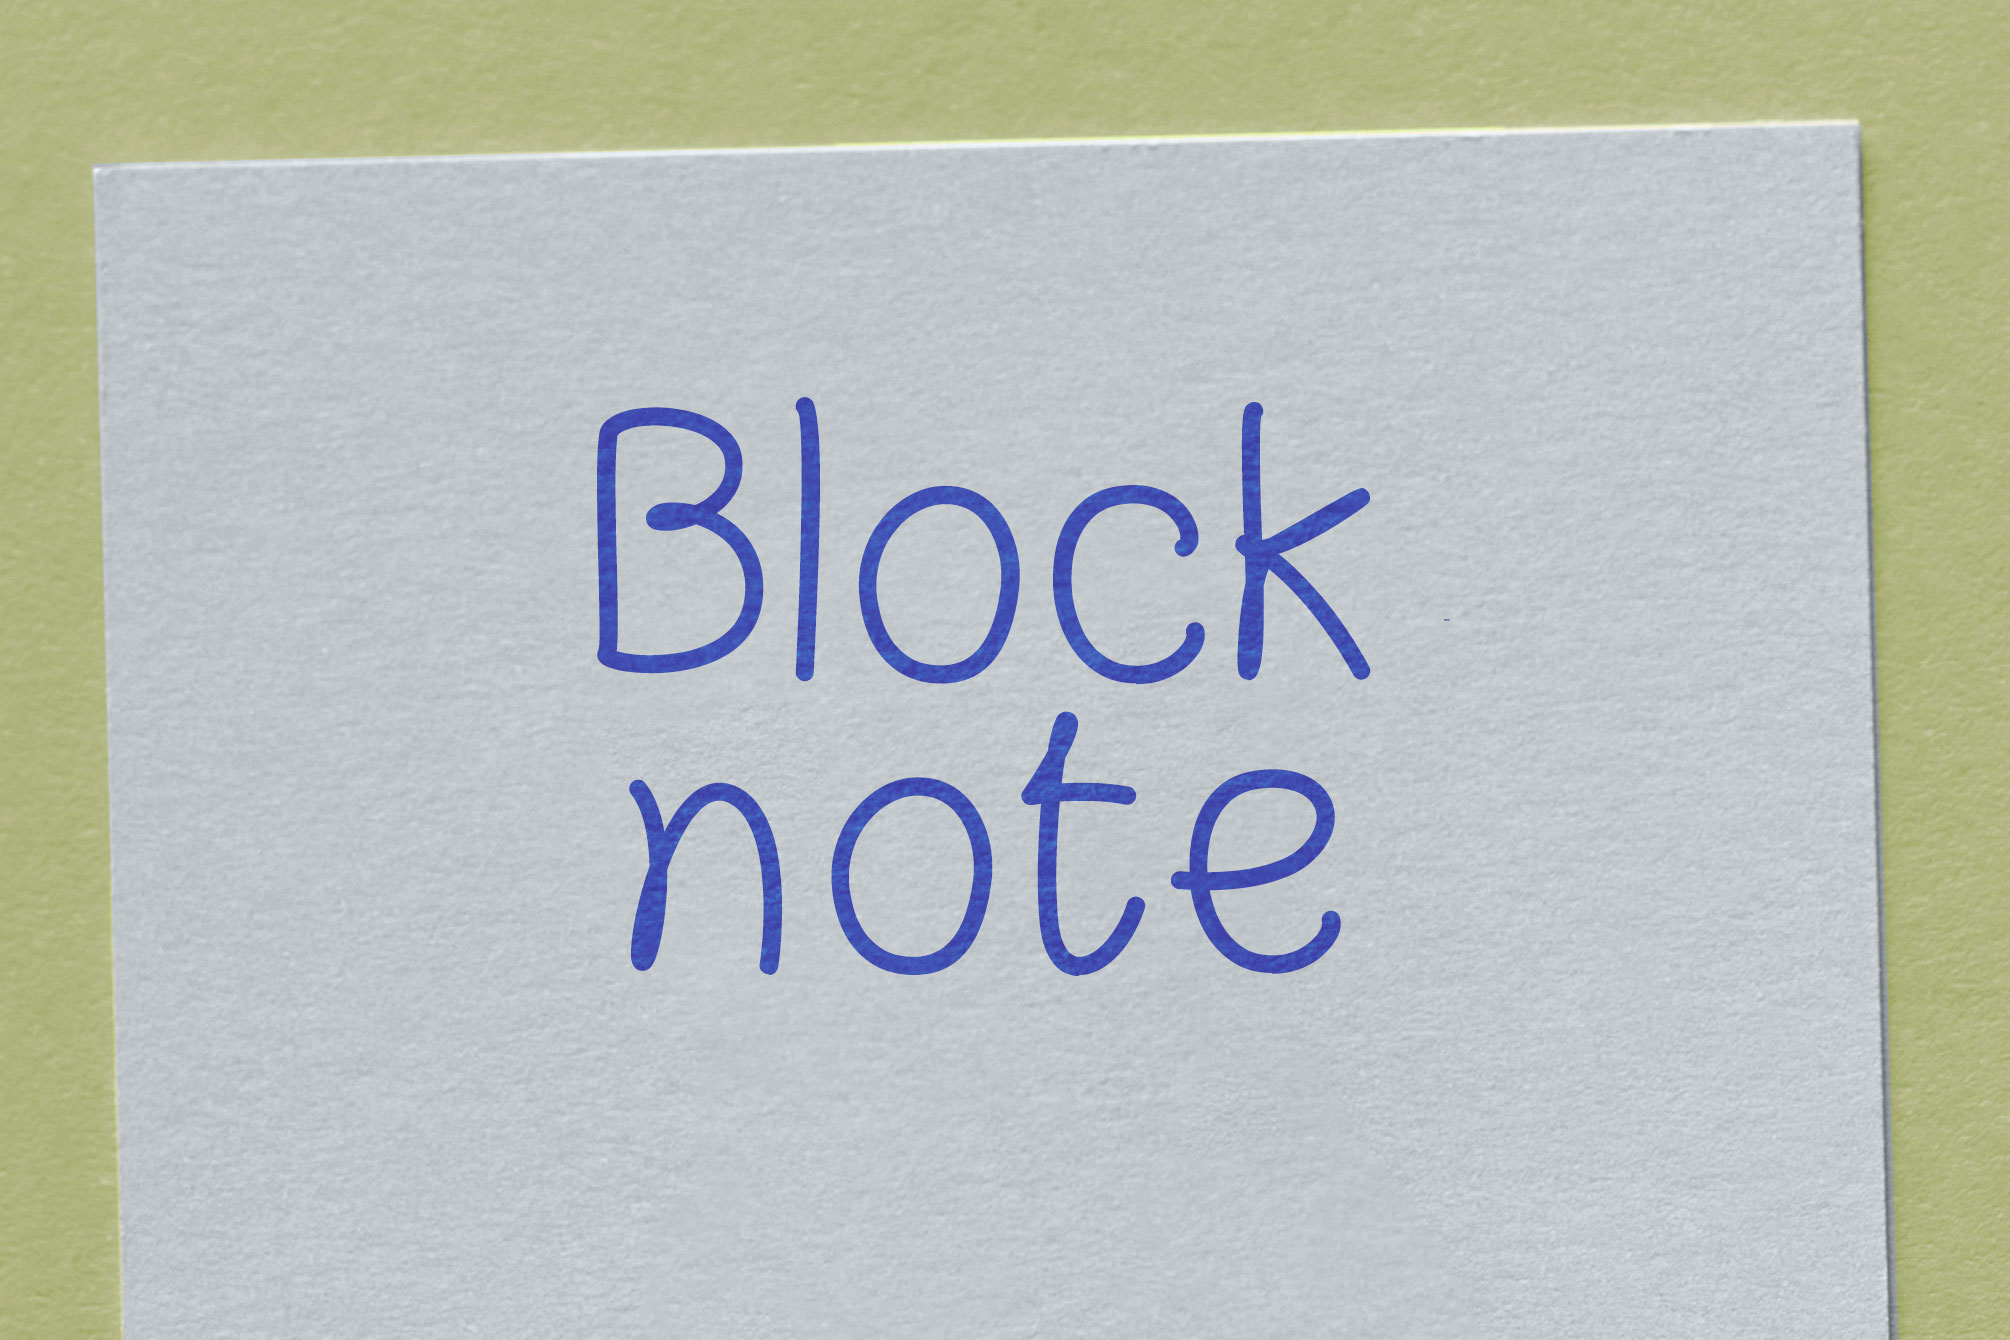 FN-Blocknote-Hand-DrawPerfect-pfi